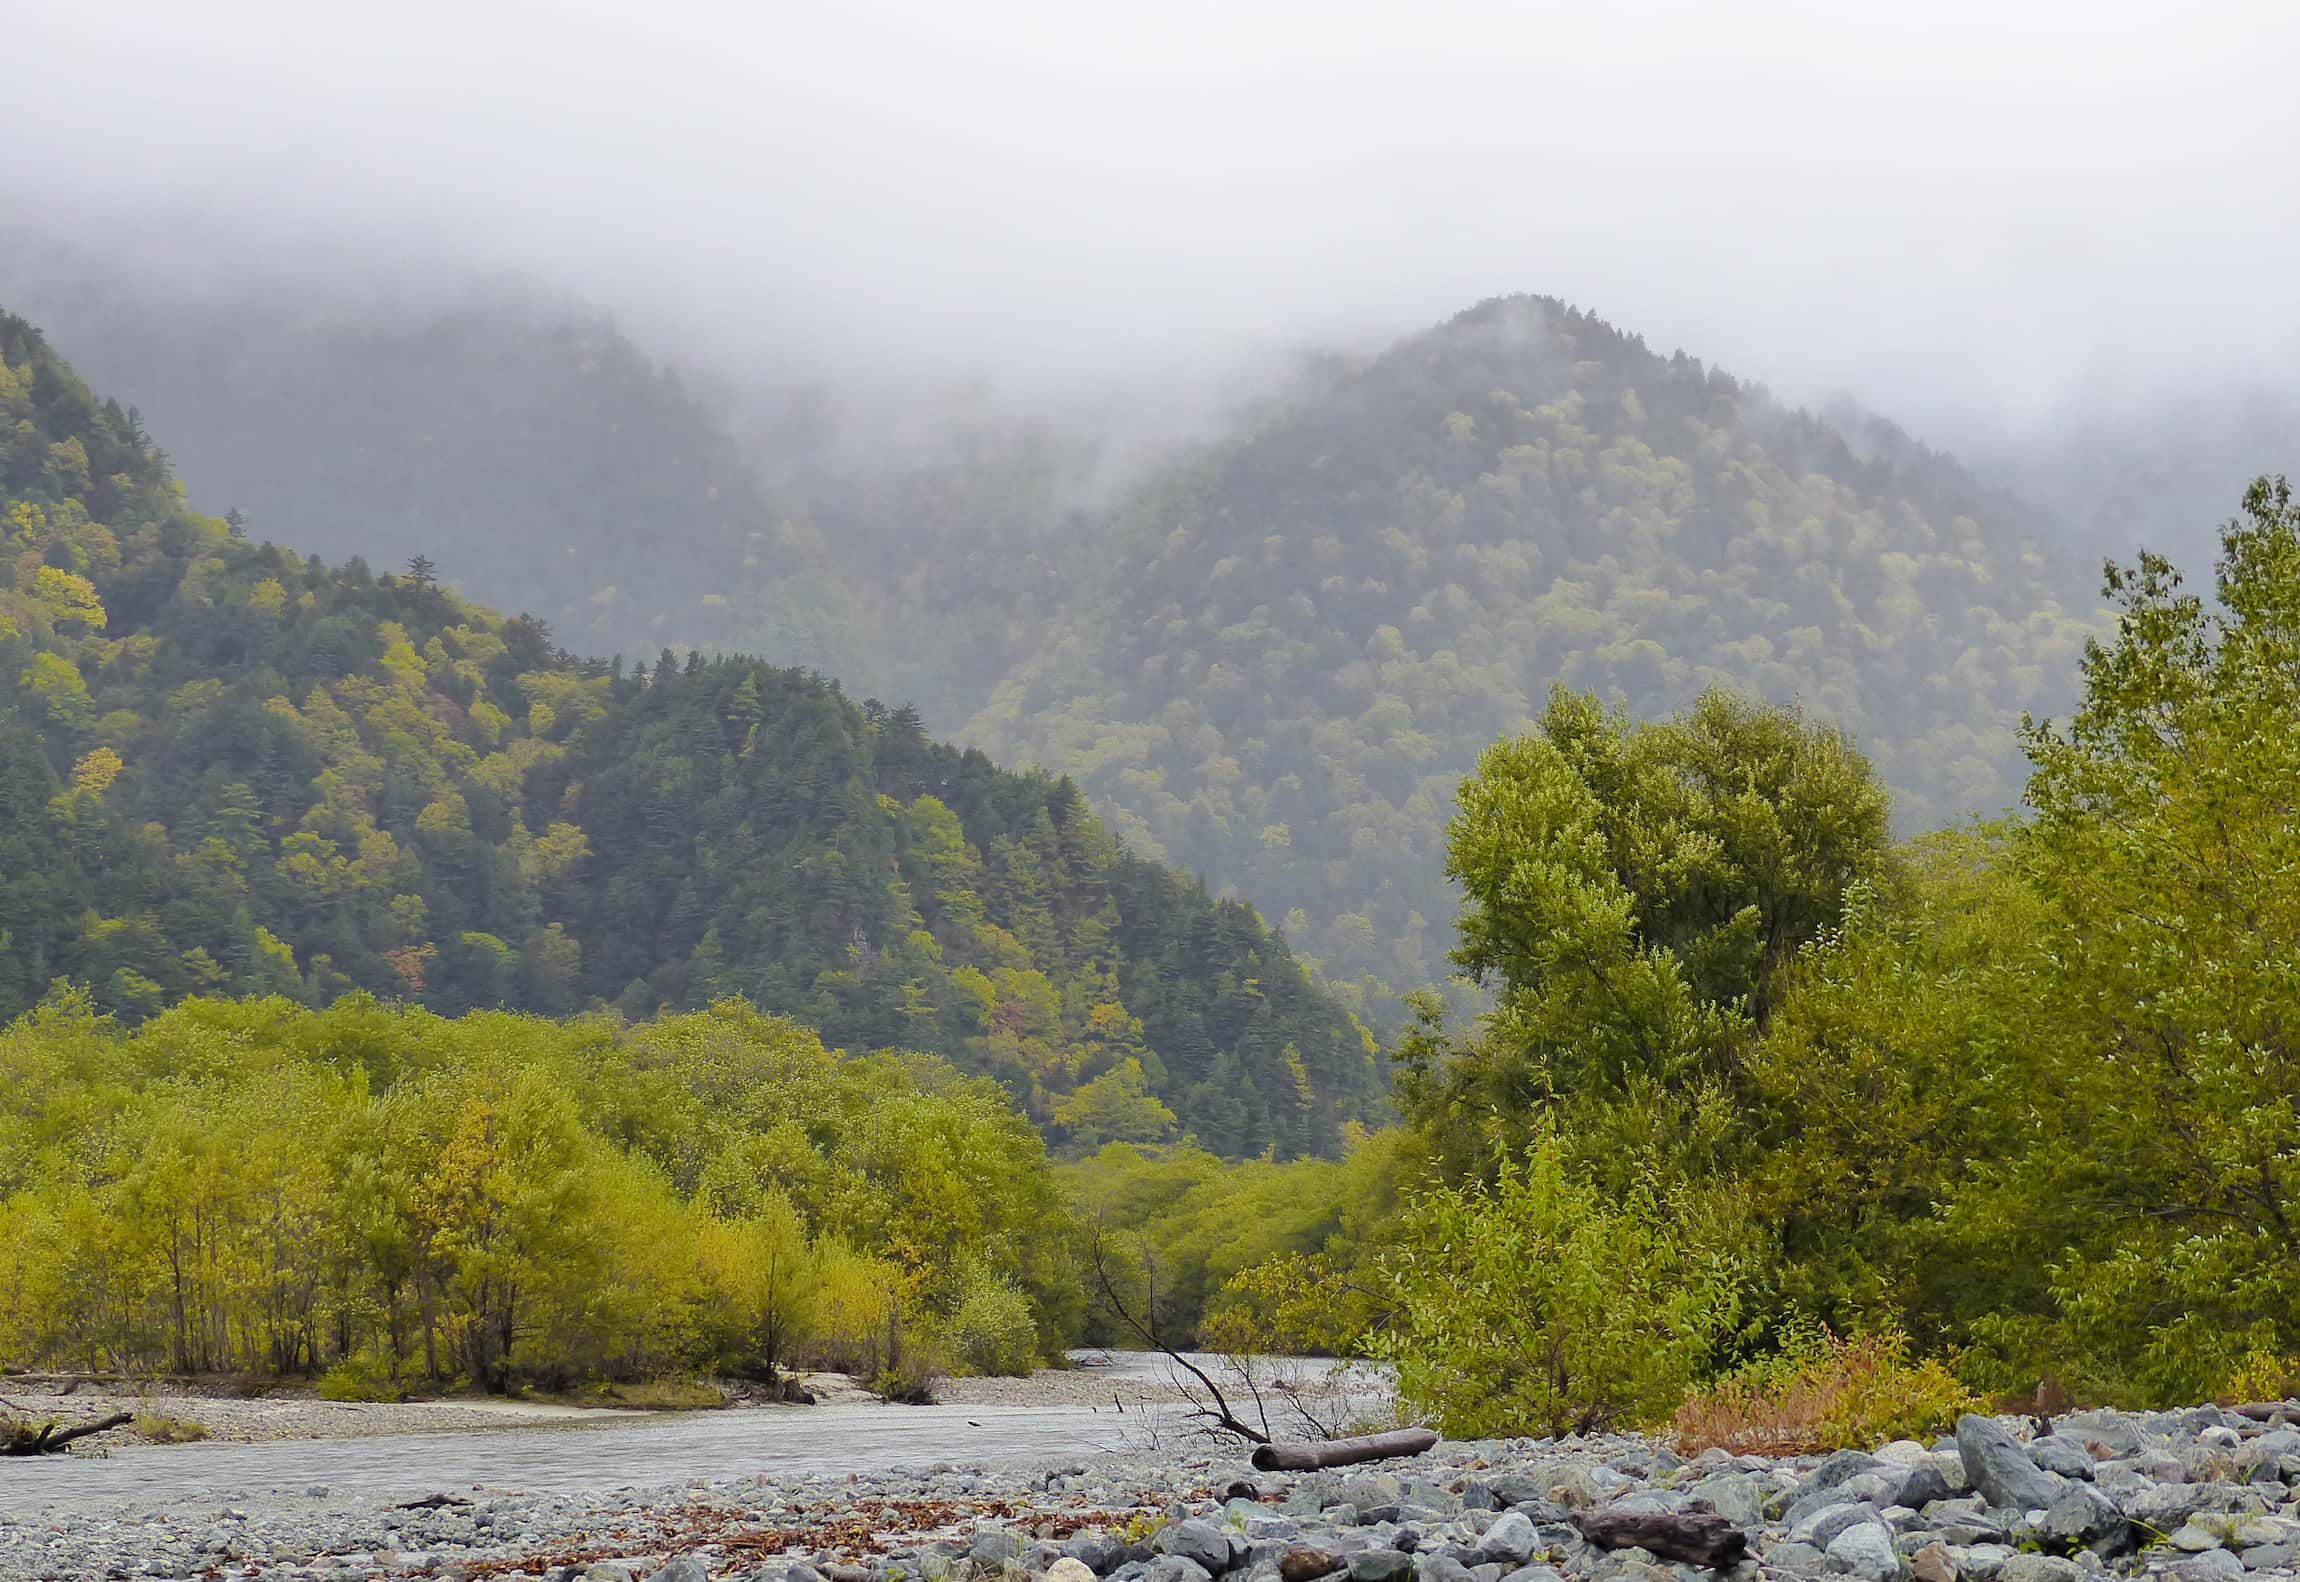 Wooded hillsides with low cloud and river